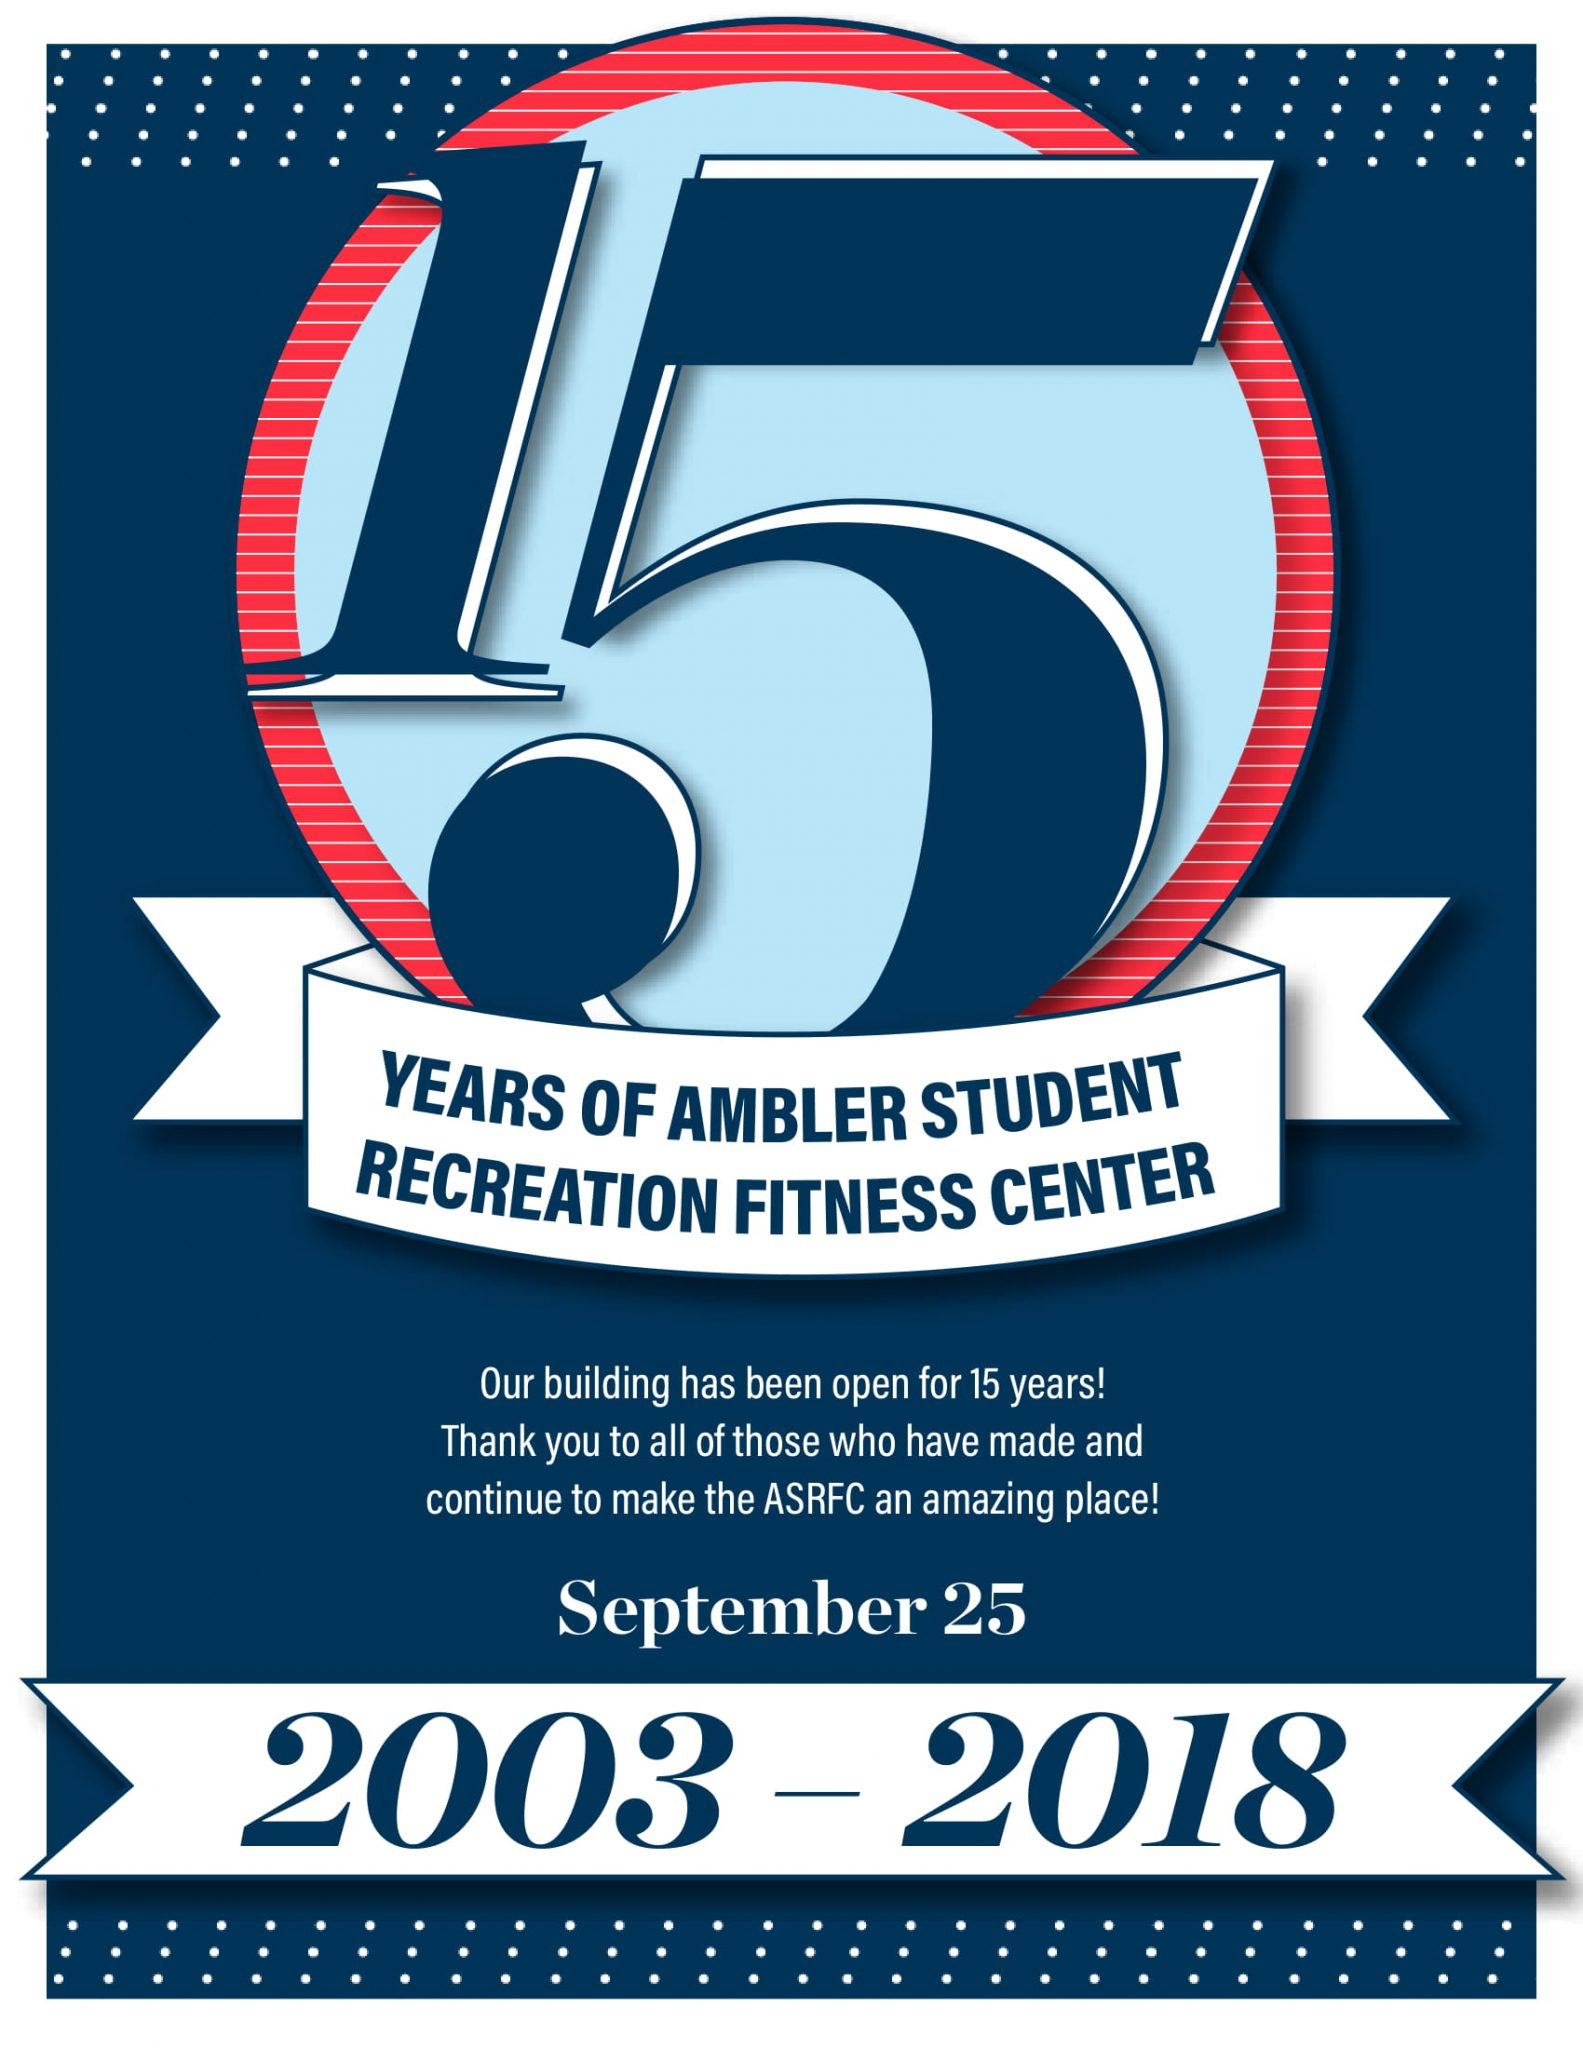 15 Years of Ambler Student Recretion Center